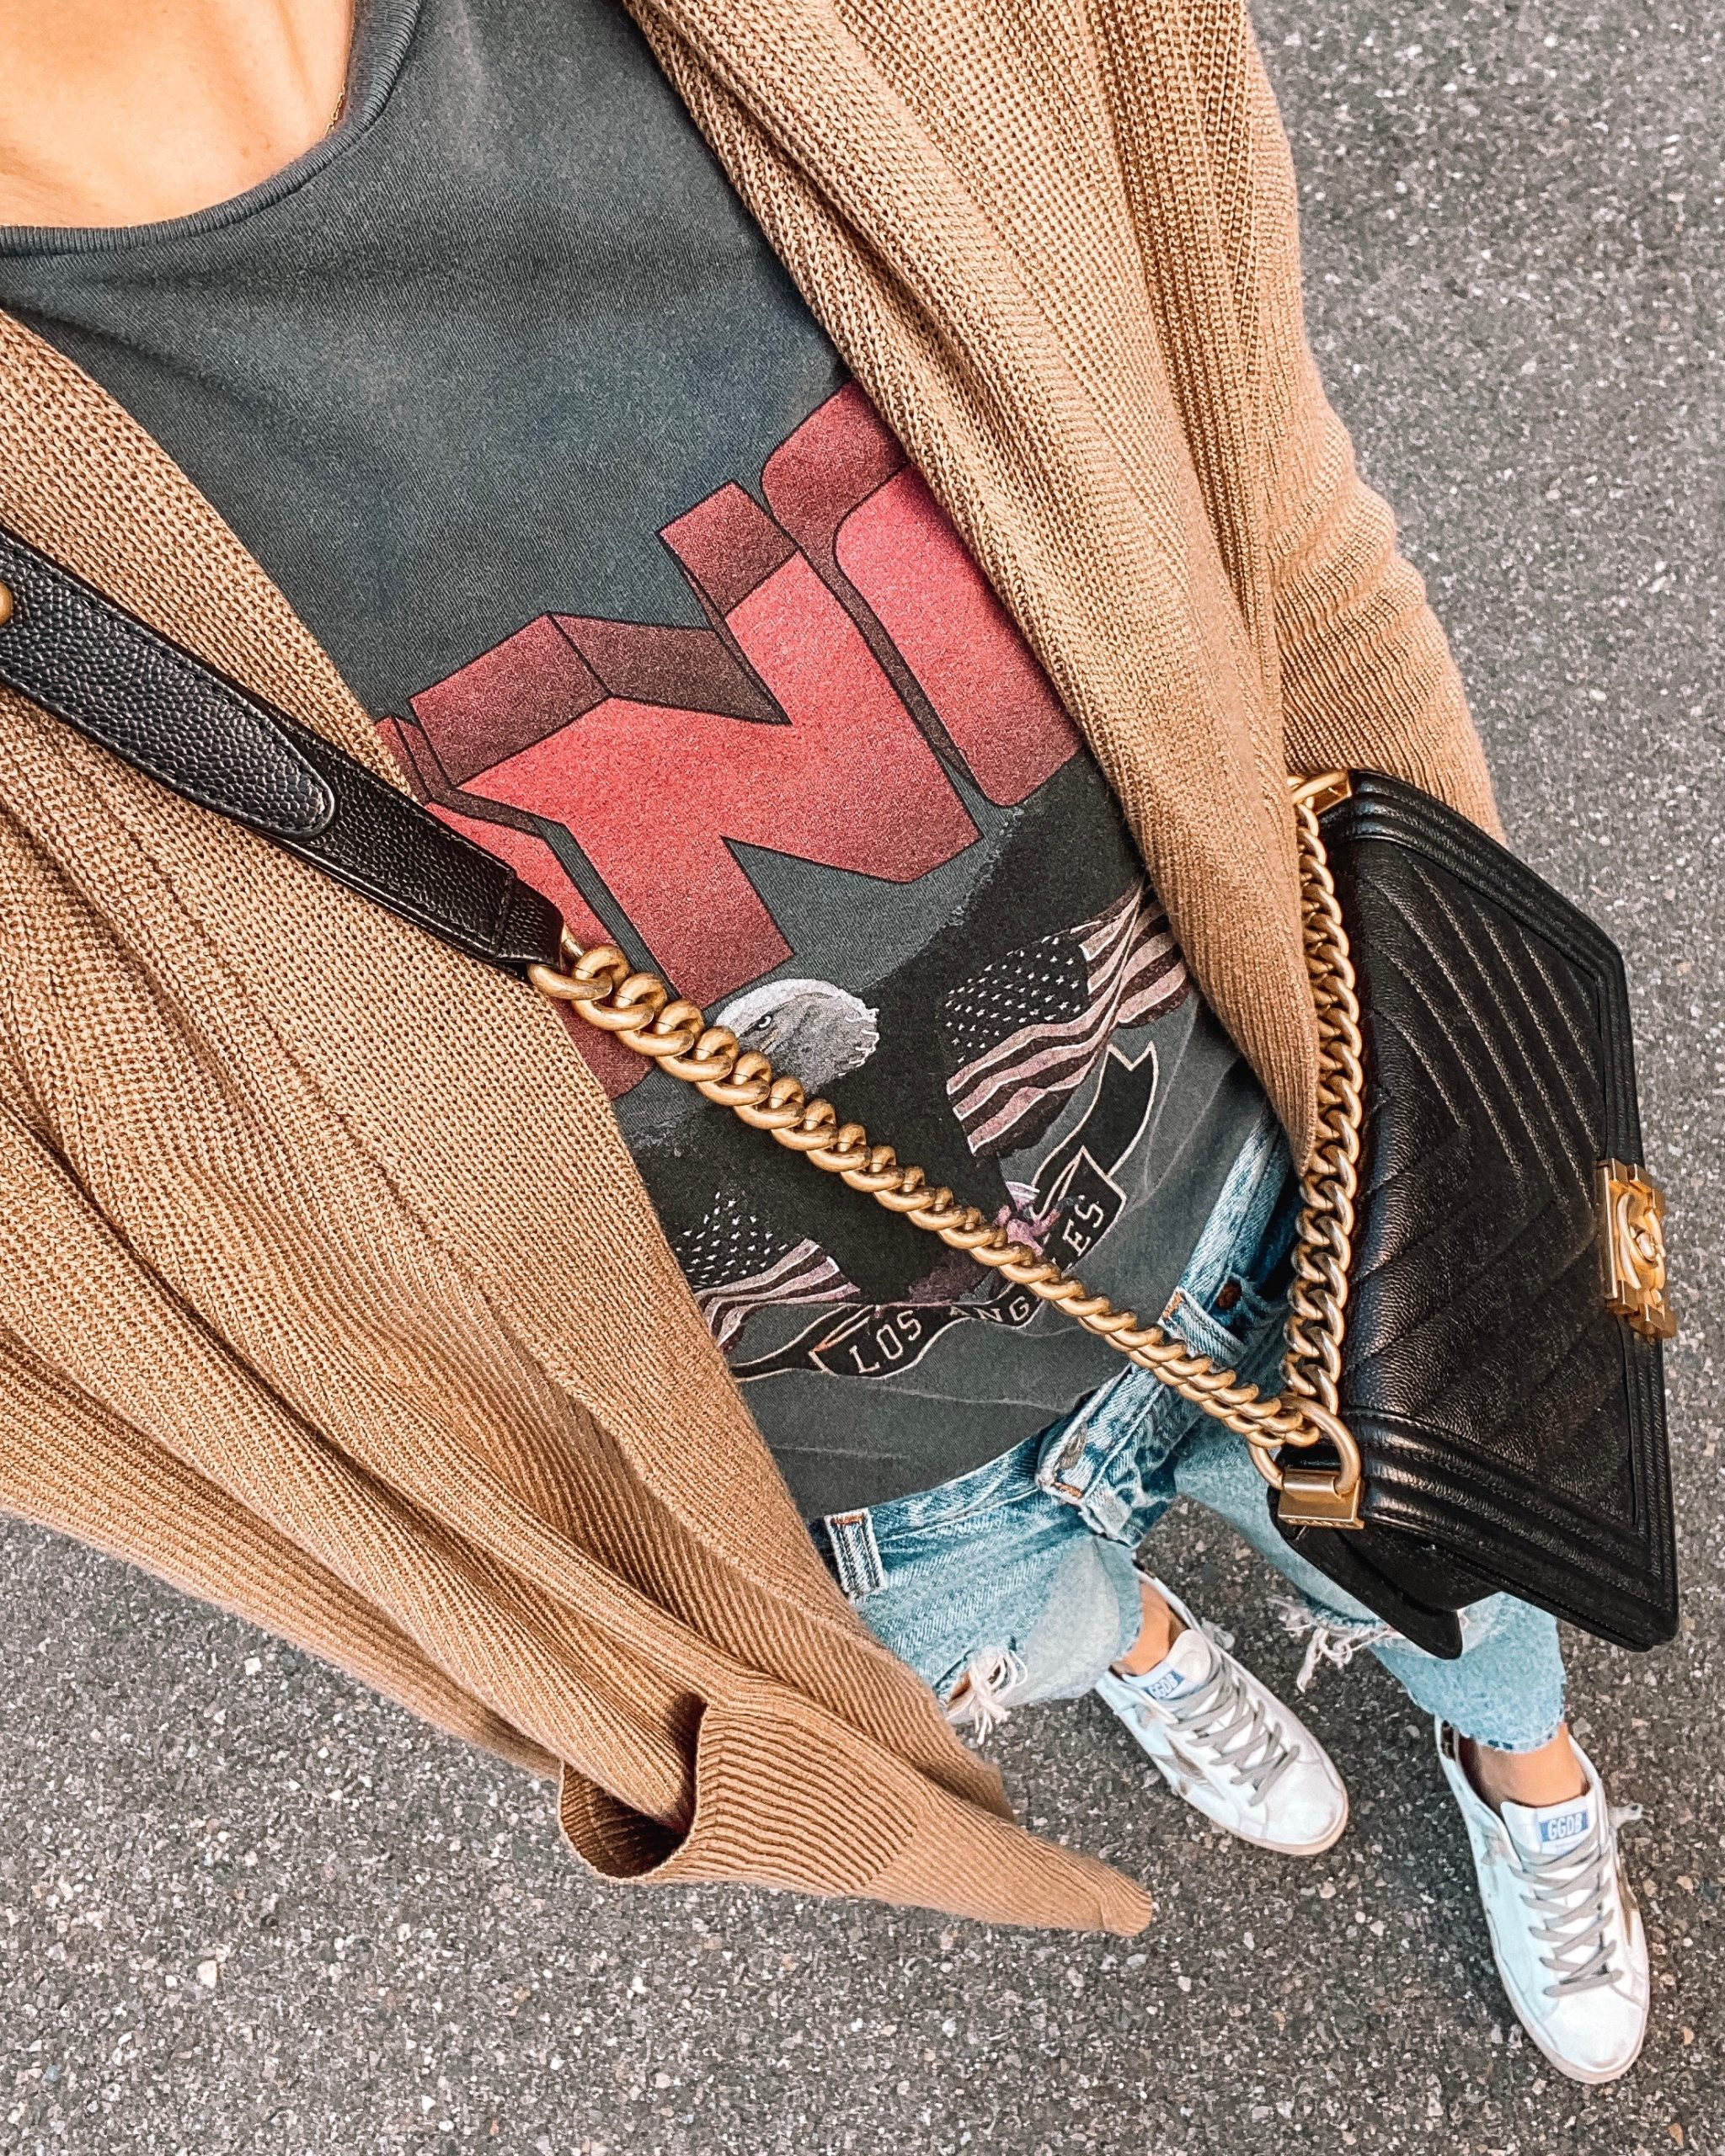 Camel Sweater Anine Bing Graphic Tshirt Levis Ripped Jeans Chanel Black Boy Bag Golden Goose Sneakers